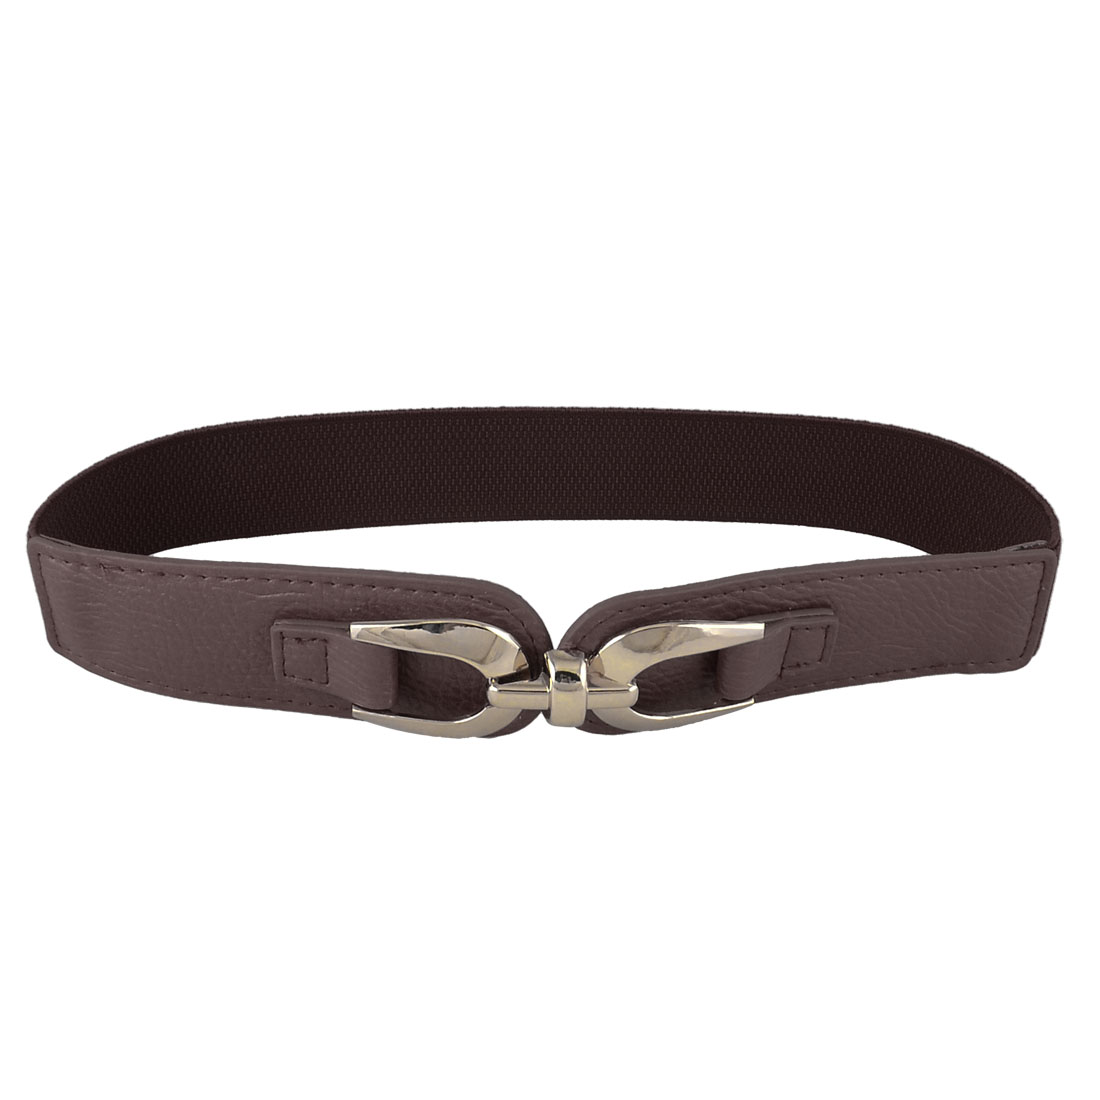 "Interlocking Buckle Elastic High Waistband Waist Belt 1.5"" Wide Dark Brown for Lady"